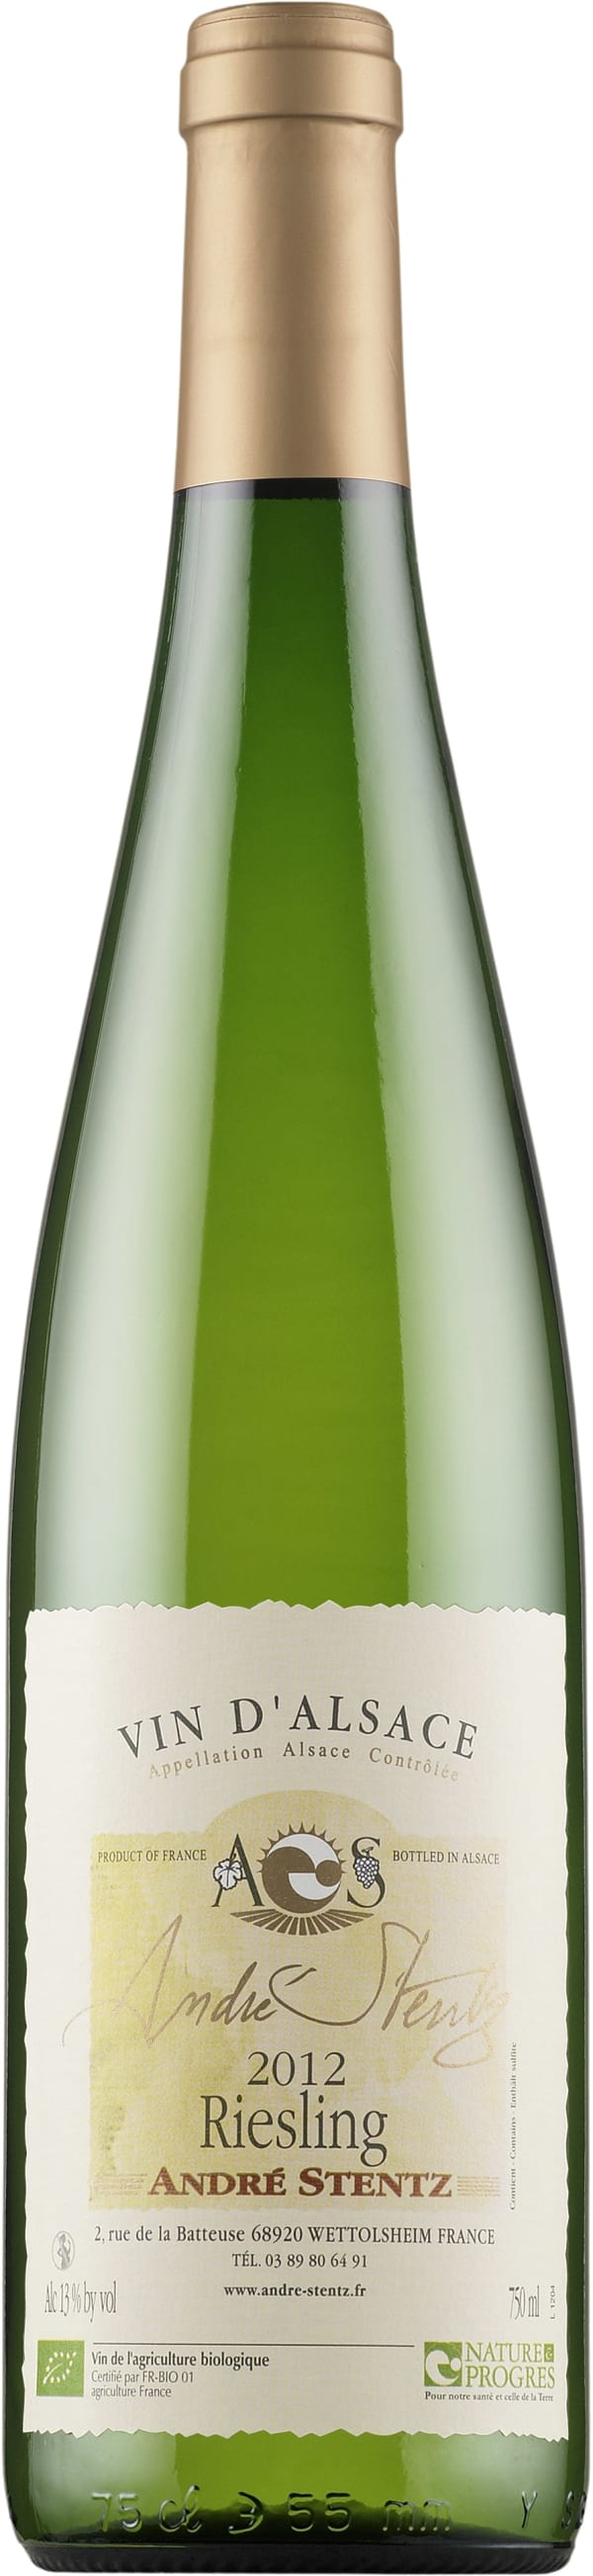 André Stentz Riesling 2015